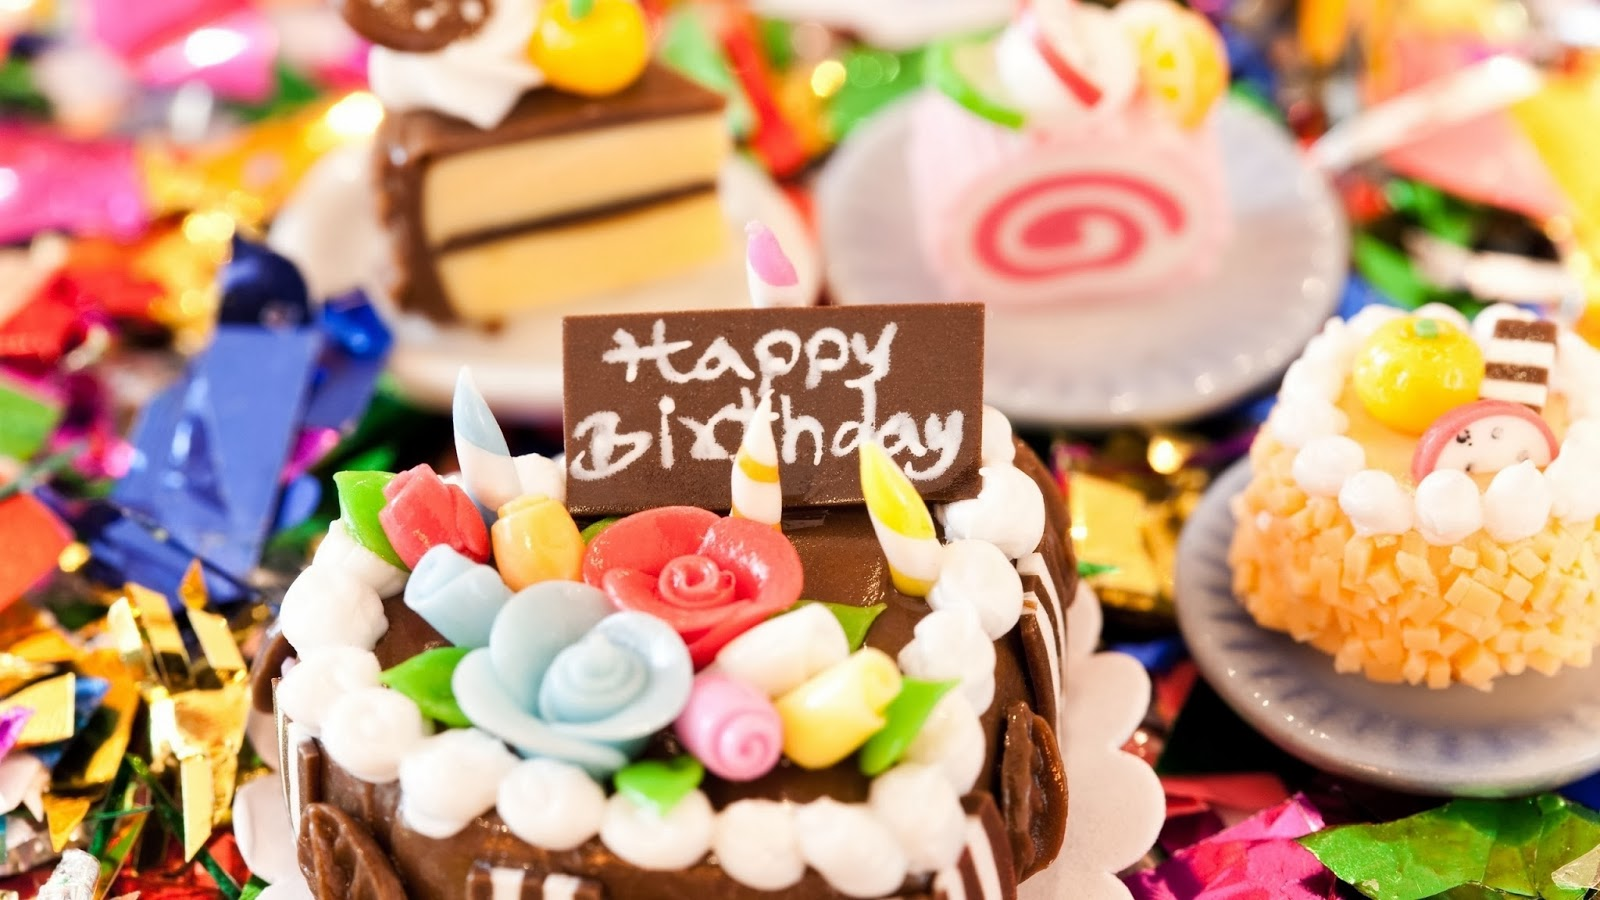 birthday wishes pictures free download ; desktopwallpapers